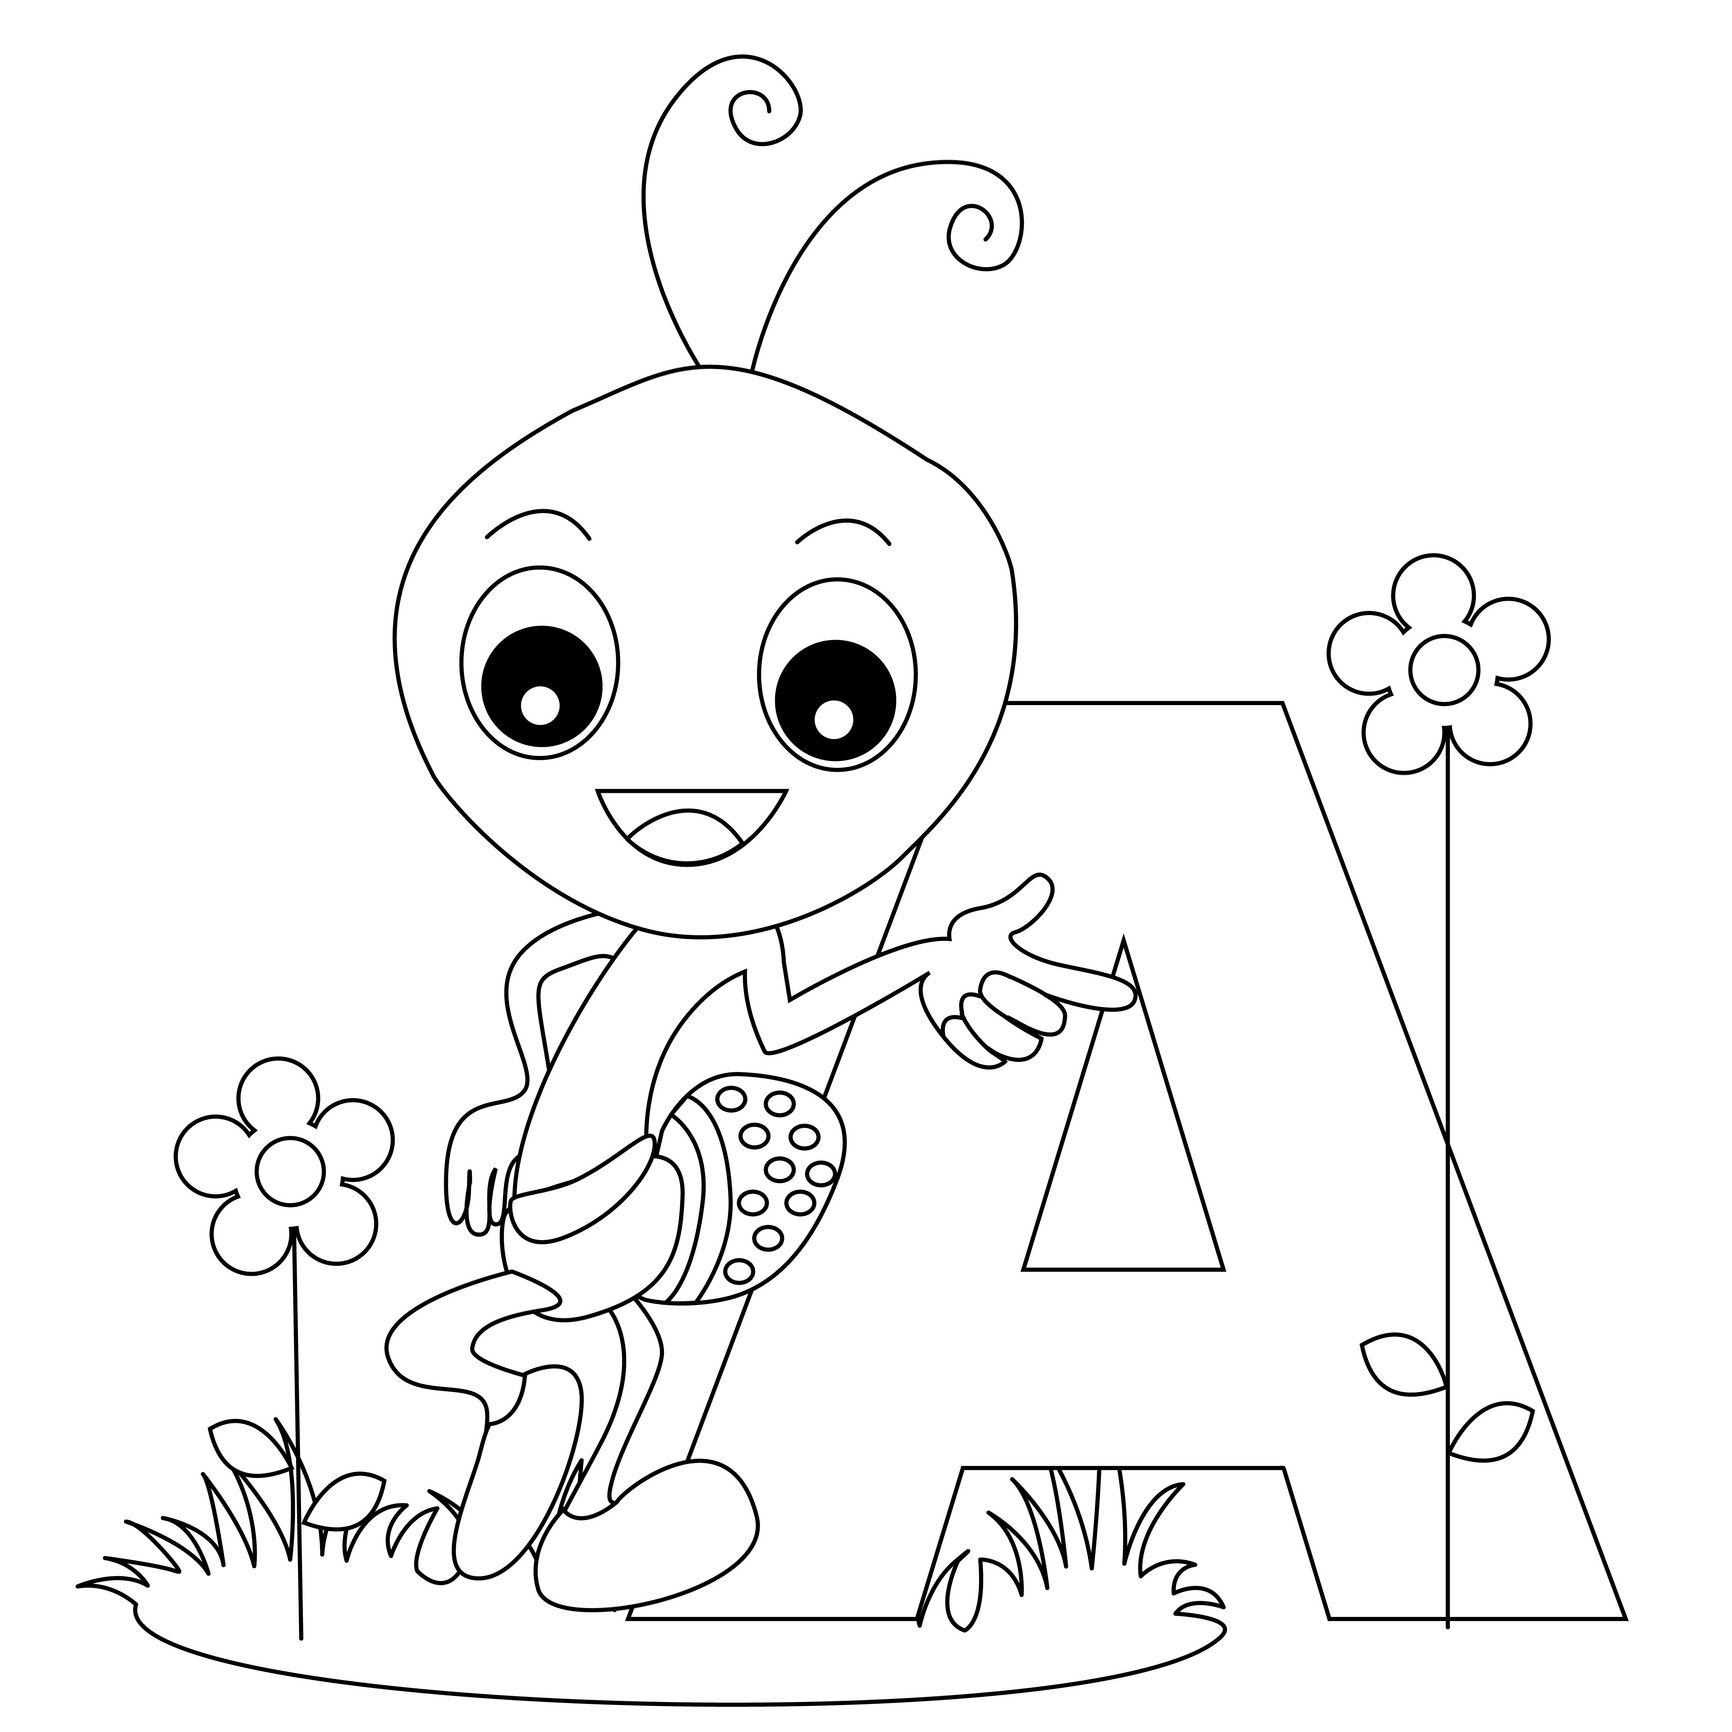 animal alphabet letters animal alphabet letter a coloring - A Colouring Pages